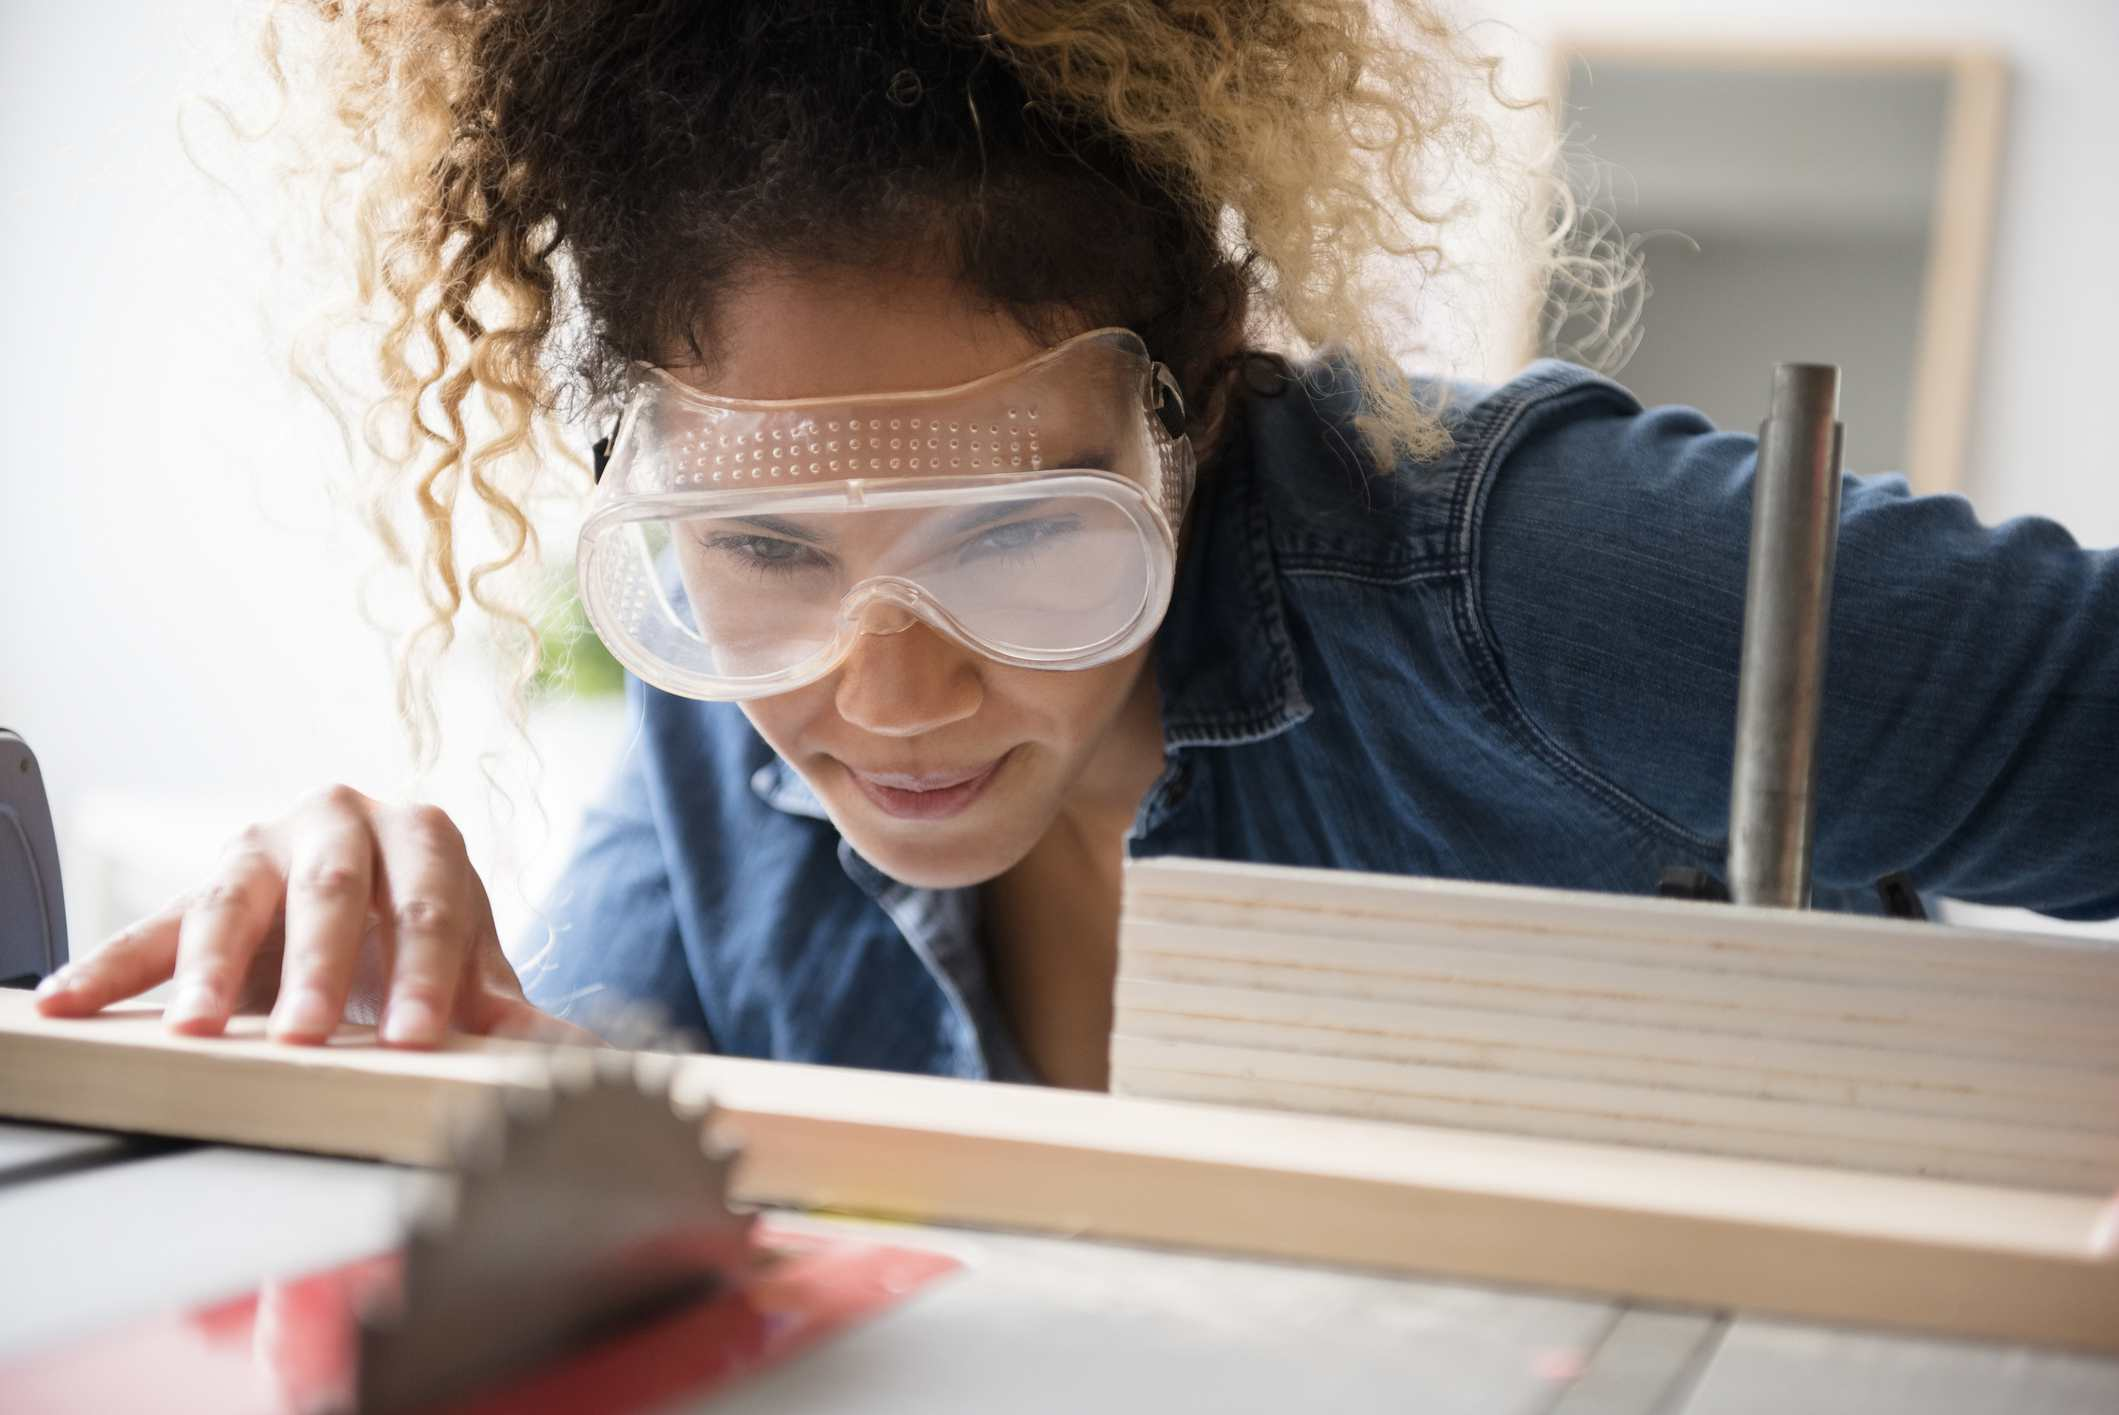 A woman using a table saw